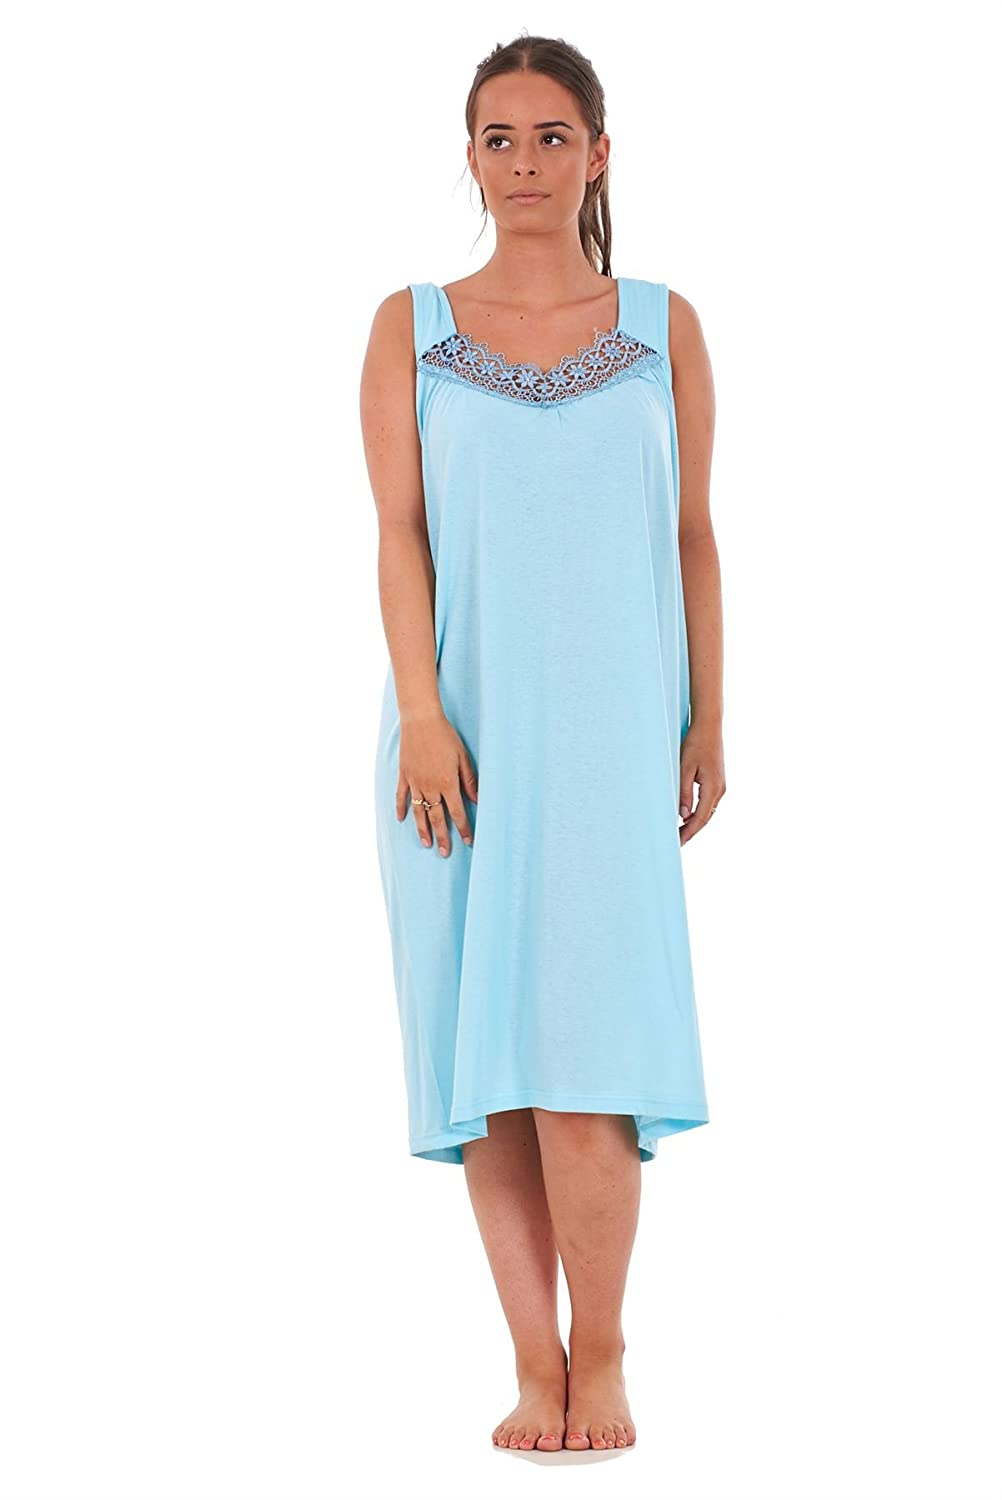 Bay eCom UK Ladies Nightwear V Neck Plain 100% Cotton Sleeveless Long Nightdress M to XXXL Does not Apply